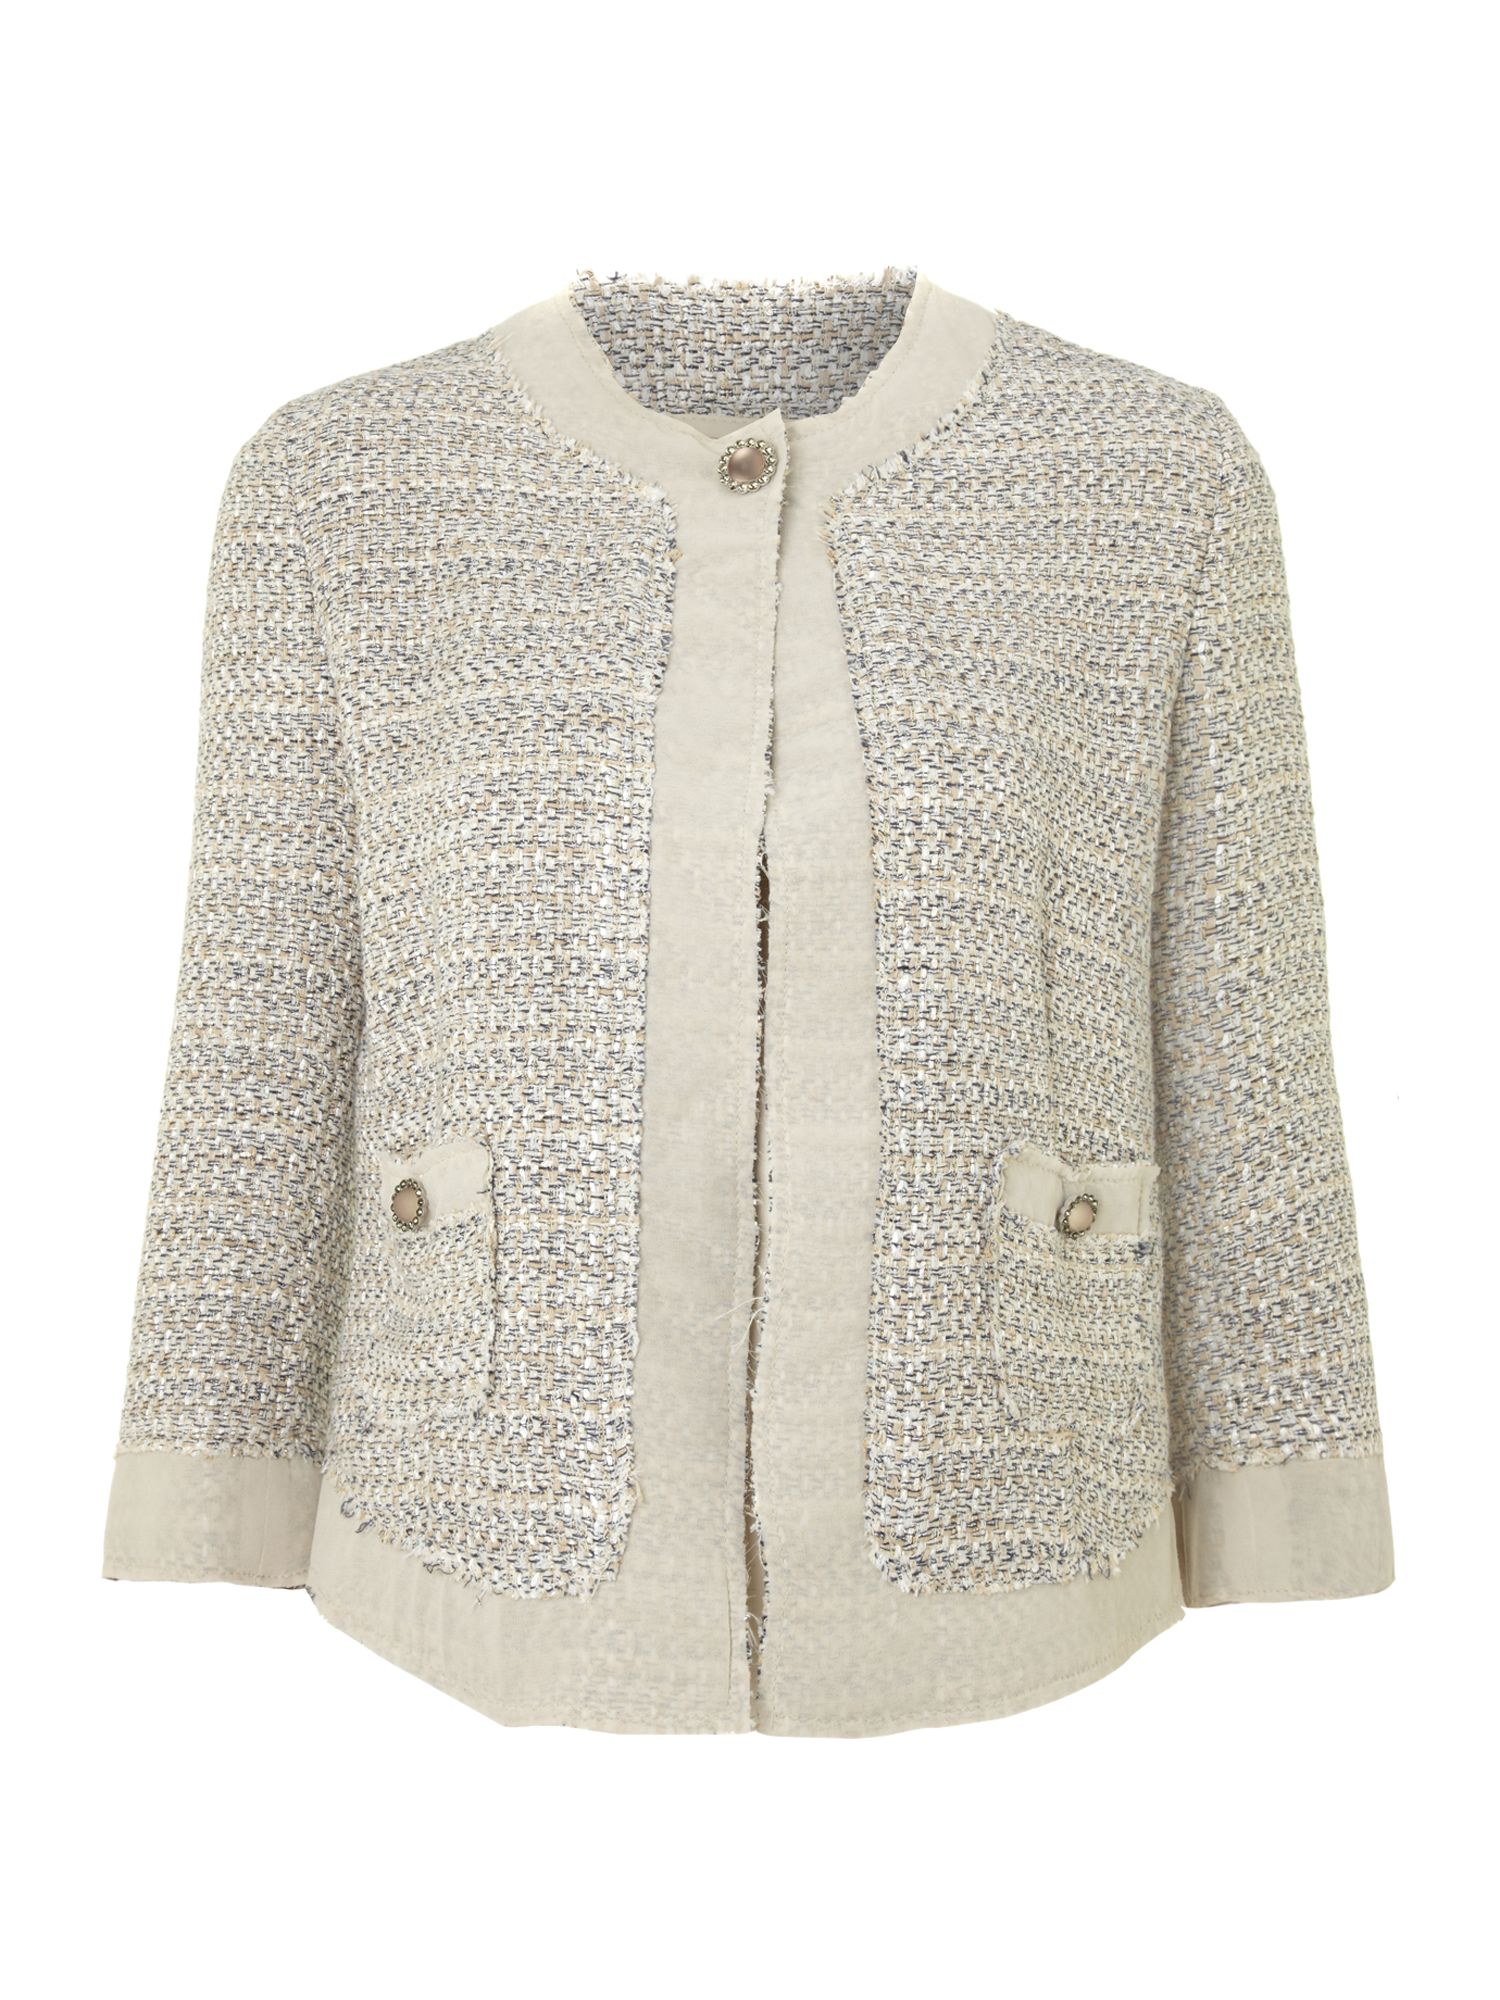 Long sleeved studded sleeve boucle jacket